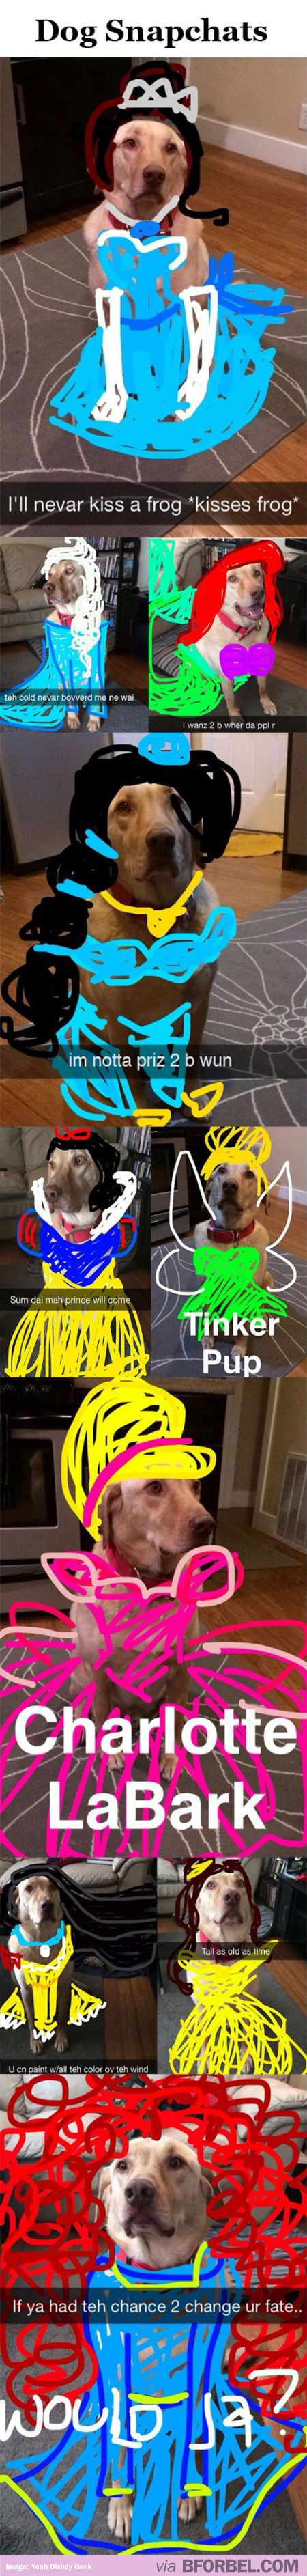 10 Snapchats That Turned This Dog Into A Disney Princess… found this hilarious